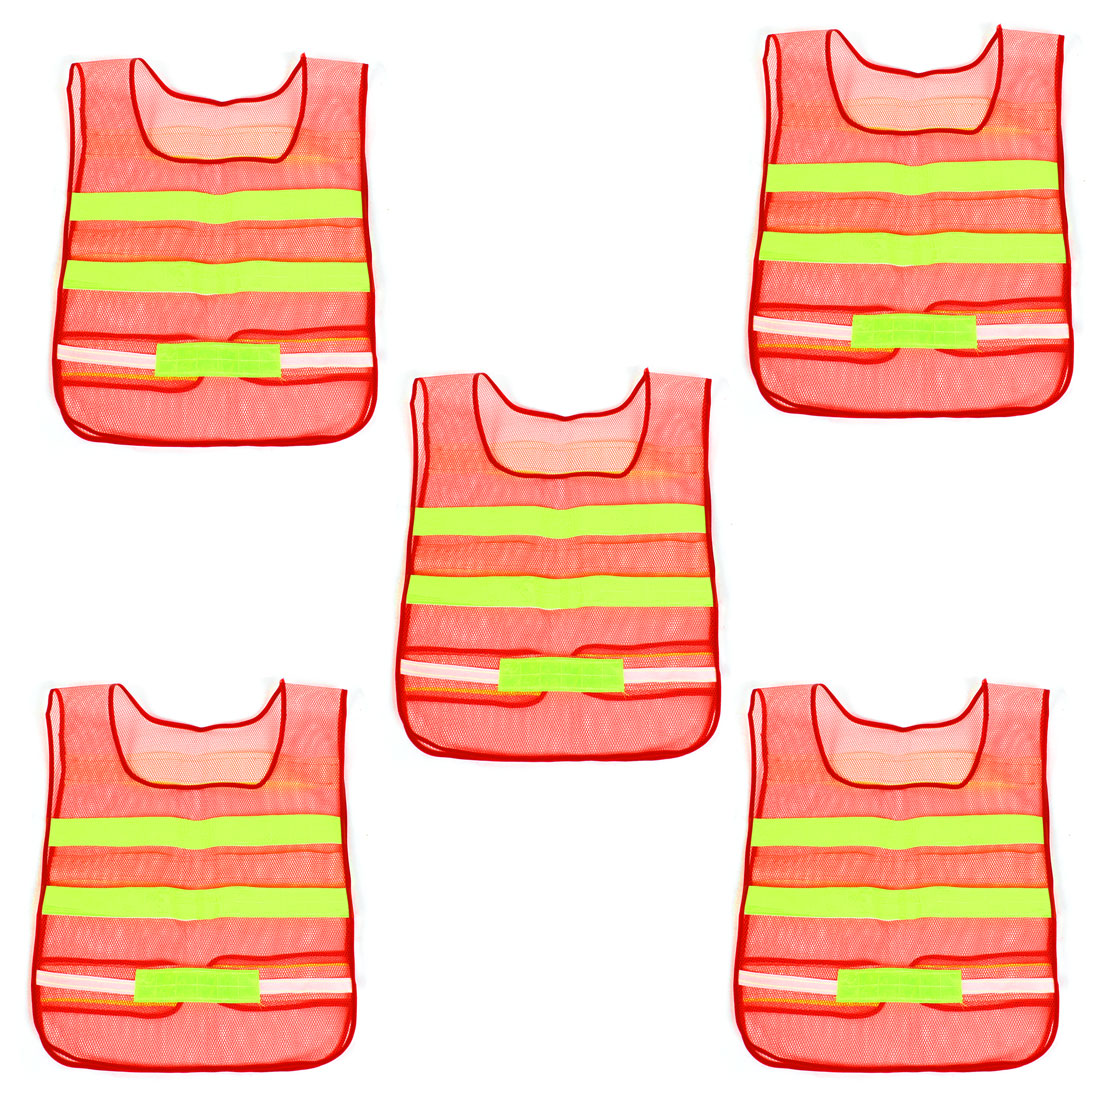 Traffic Red Yellow High Visibility Security Reflective Waistcoat Vest 5 Pcs